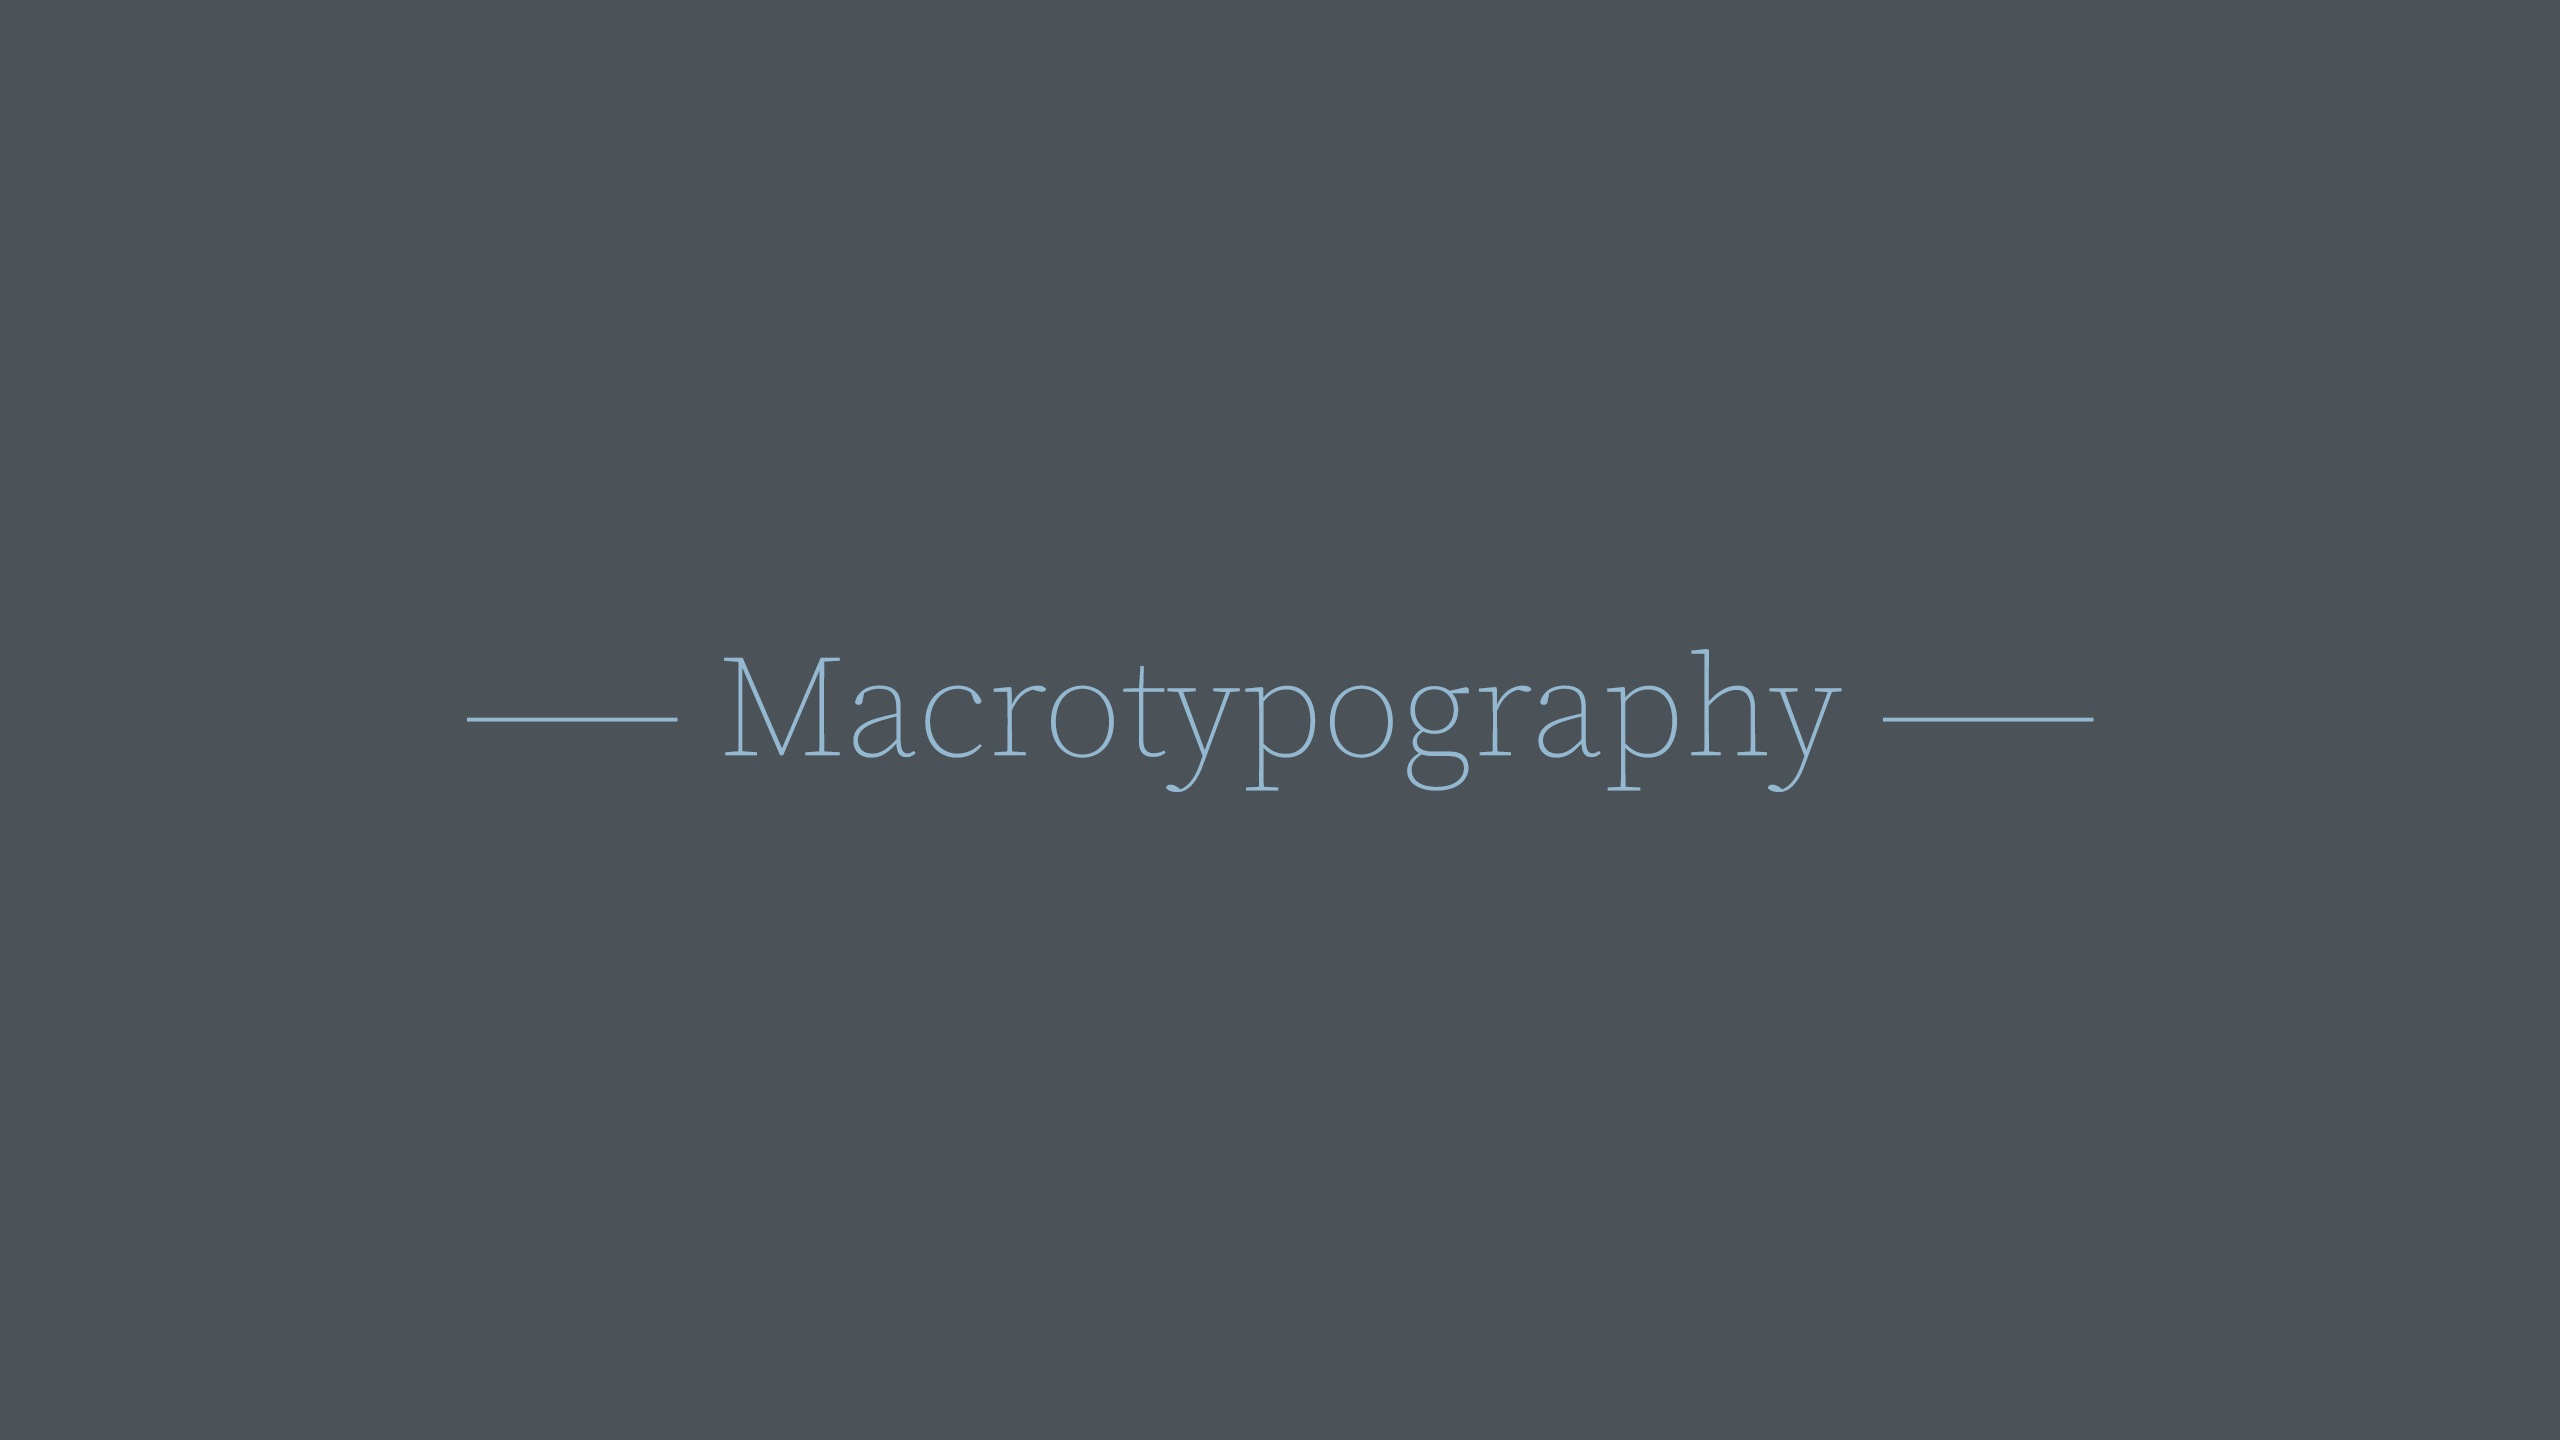 Macrotypography